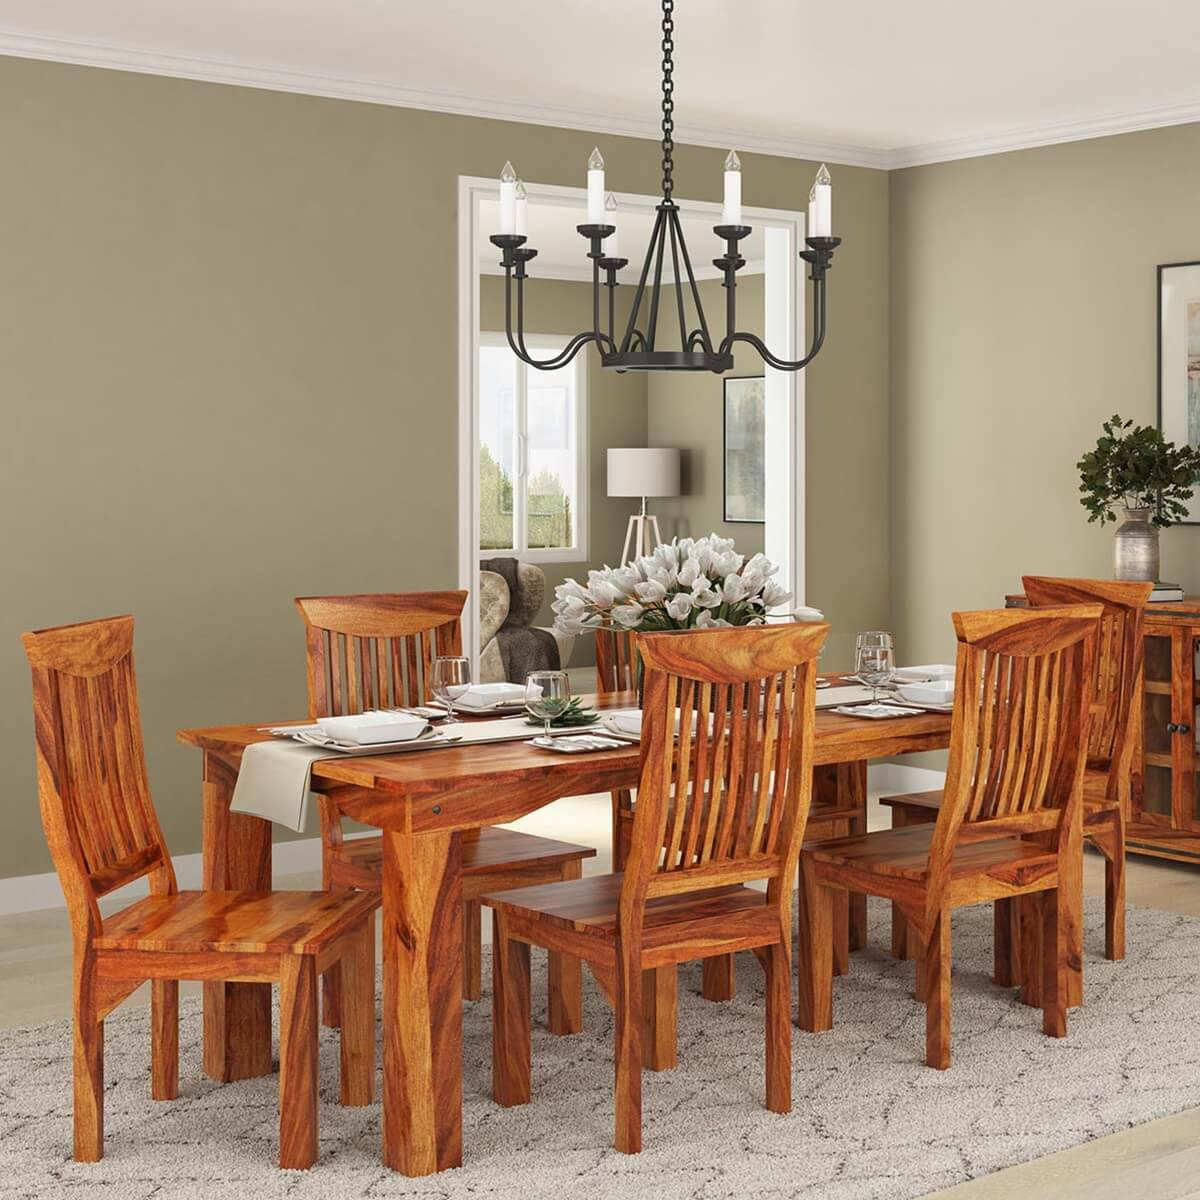 Rustic Solid Wood Large Square Dining Table Chair Set: Idaho Modern Rustic Solid Wood Dining Table & Chair Set